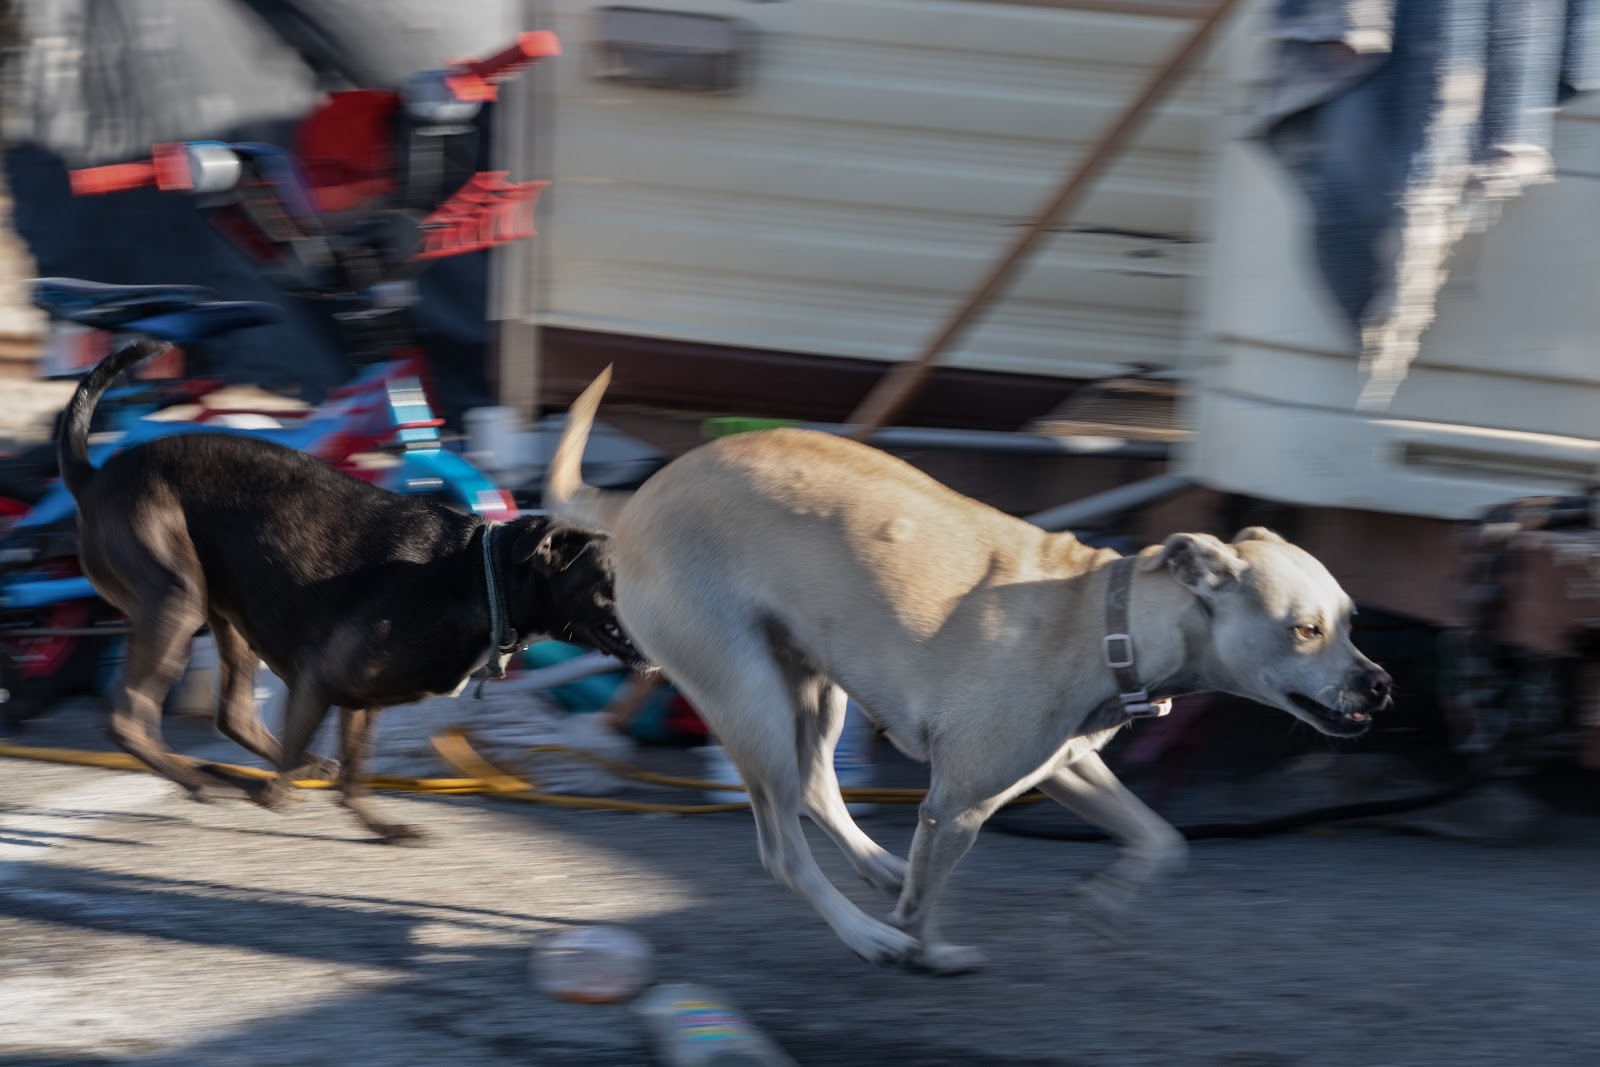 Two of Jenkins' dogs play at the North Castro Street encampment.